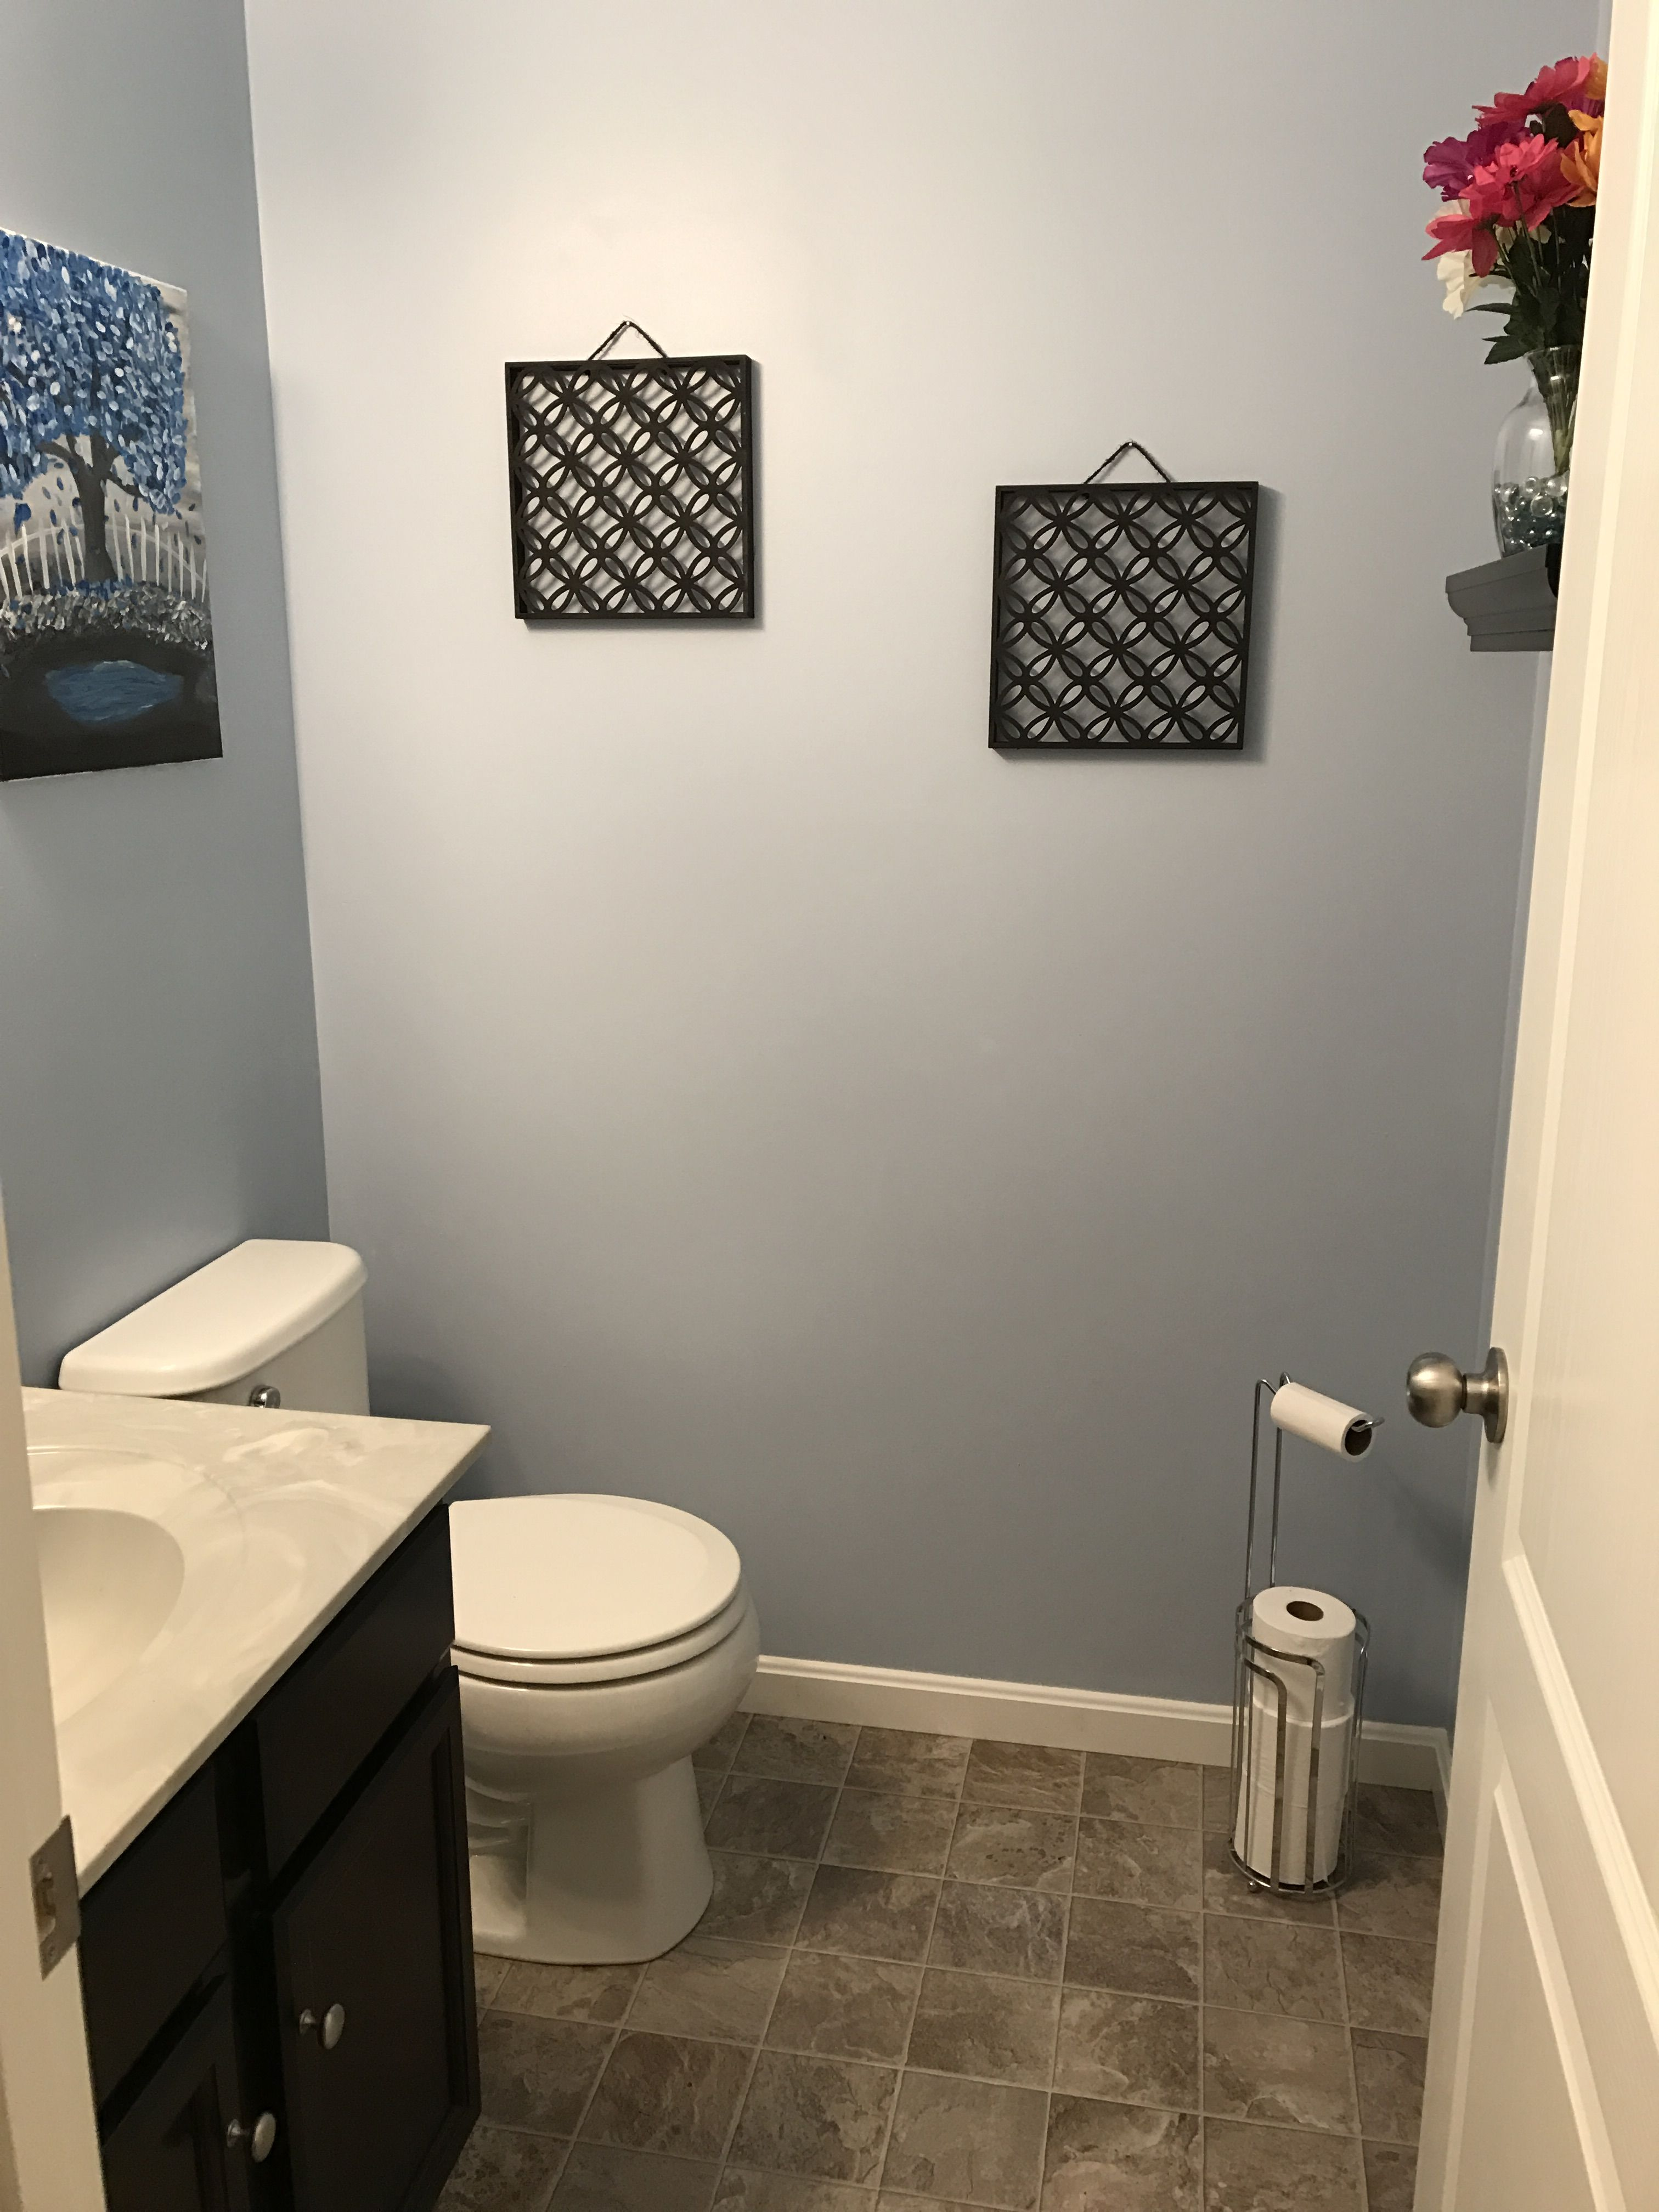 Our Powder Room Sherwin Williams Honest Blue Paint In A Small